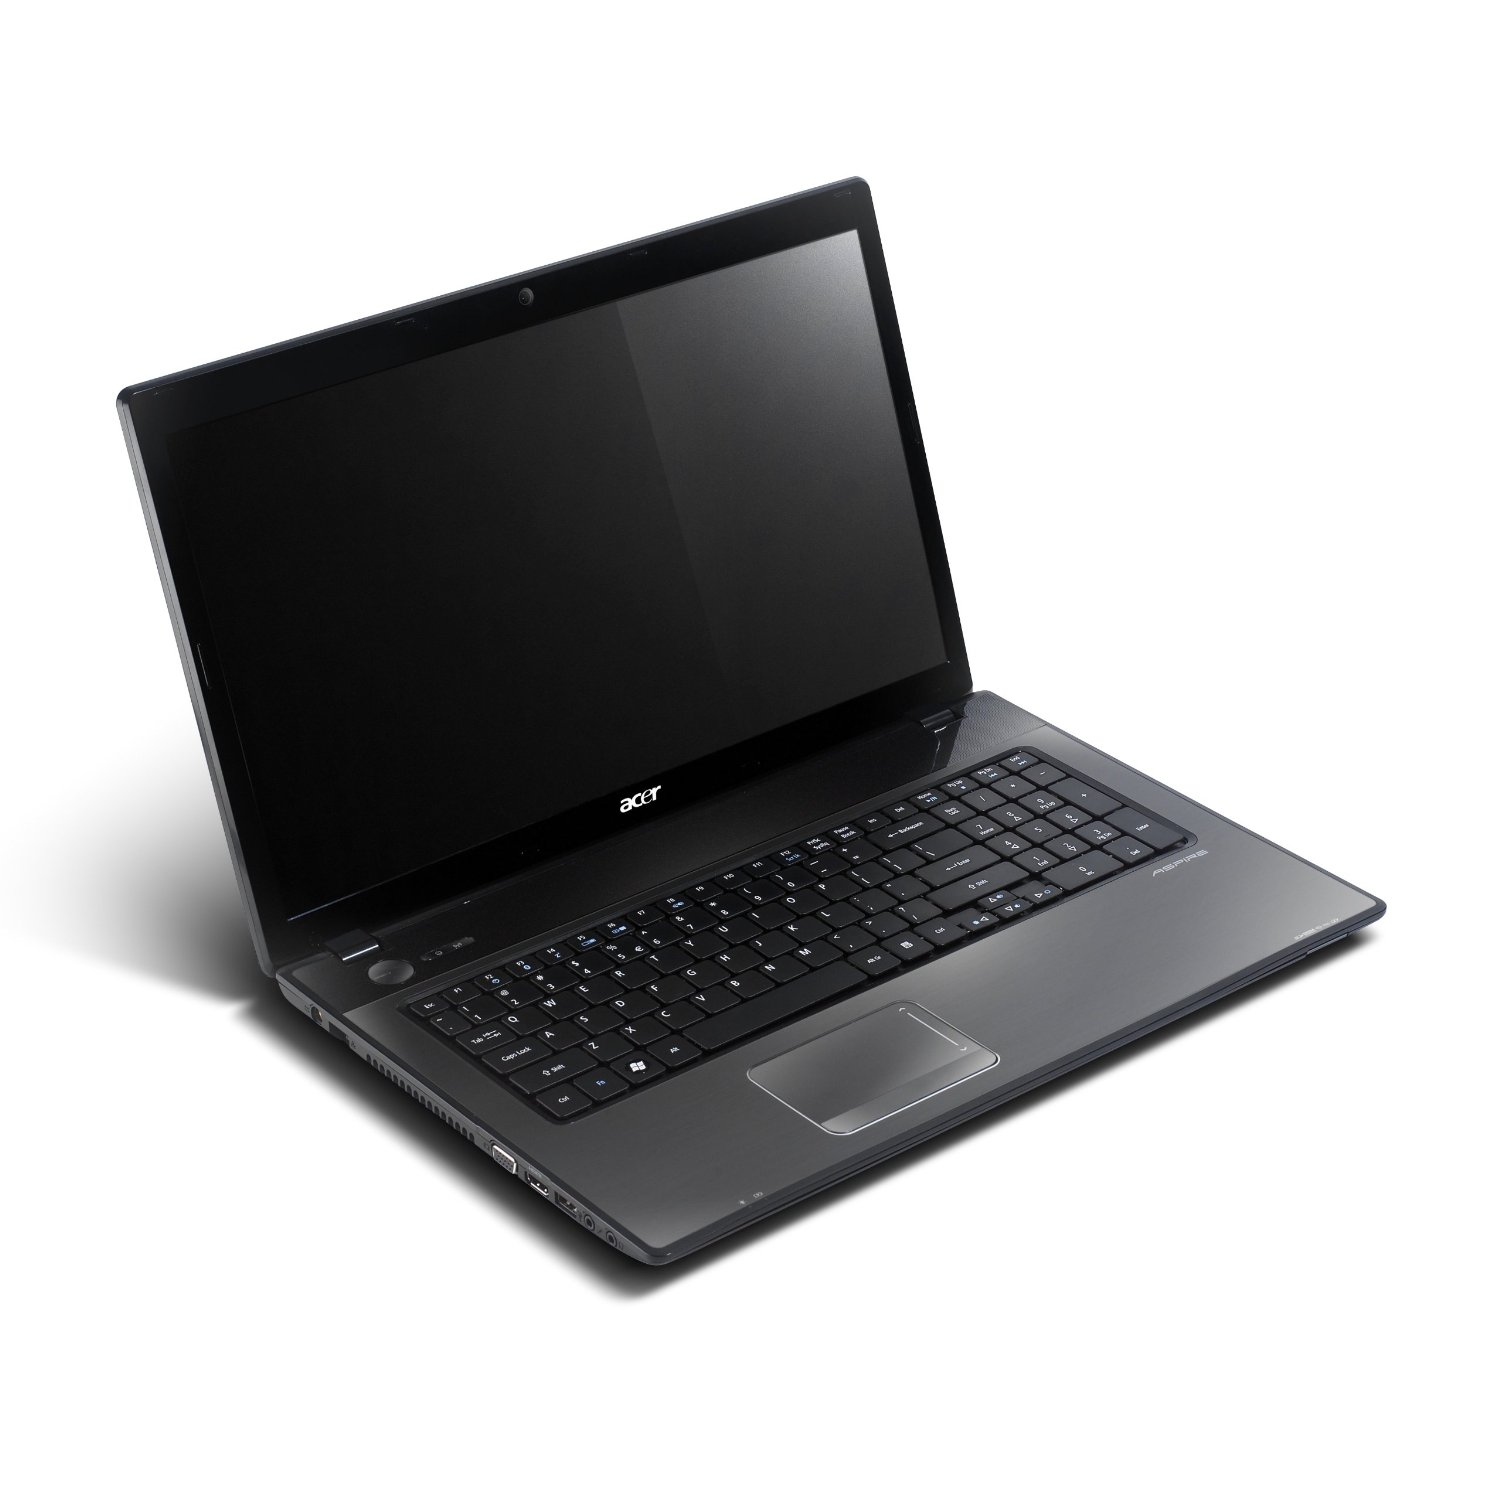 Specifications Of The Laptop: Acer Aspire AS7741Z-4839